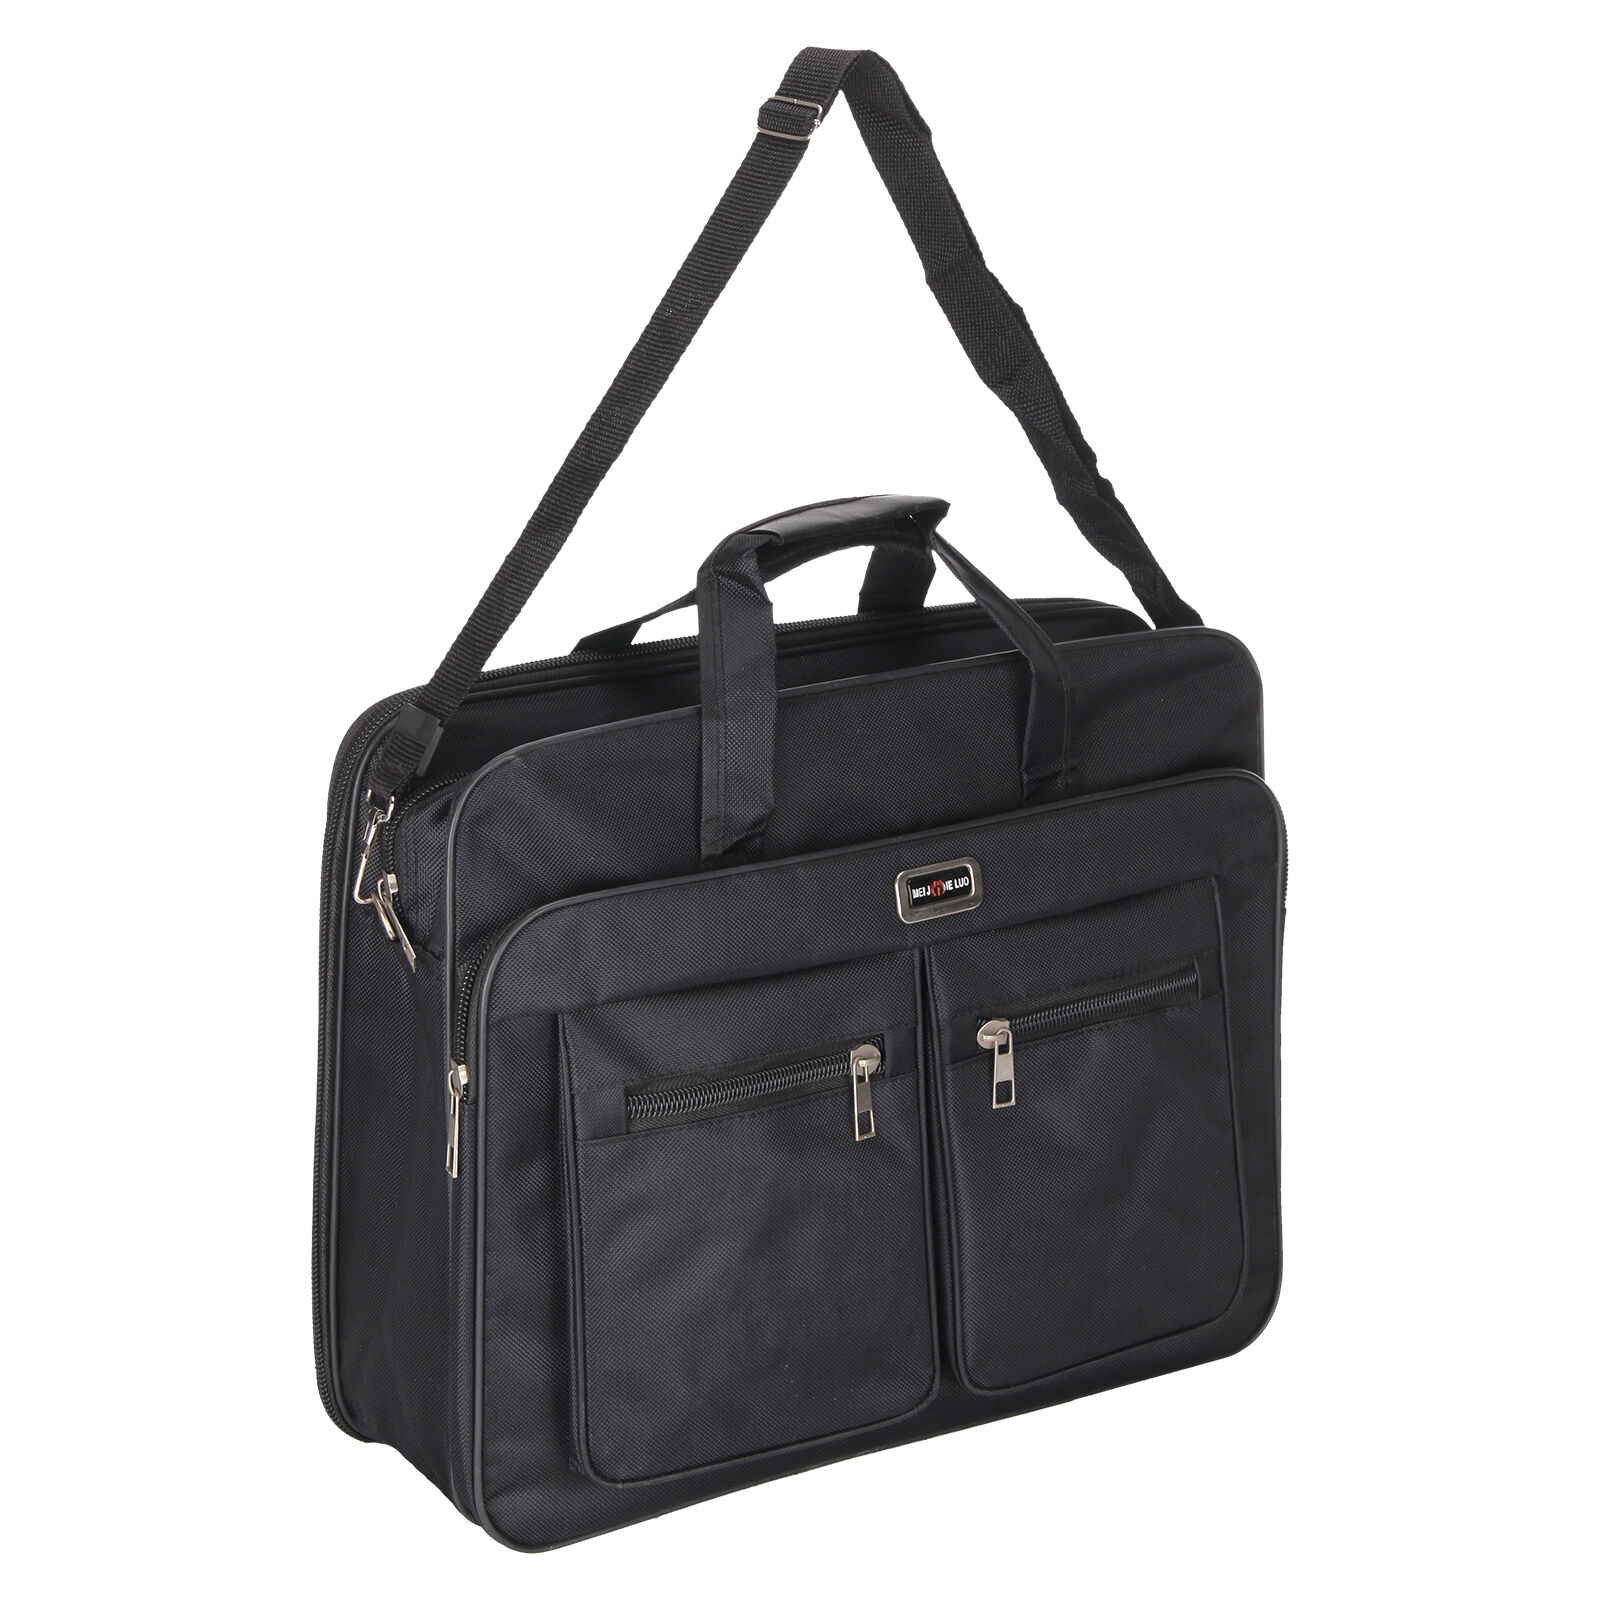 Business Laptop Case Bag Durable Laptops Up To 17 Inch Notebook Computer Black U2022 U00a38.39 - PicClick UK